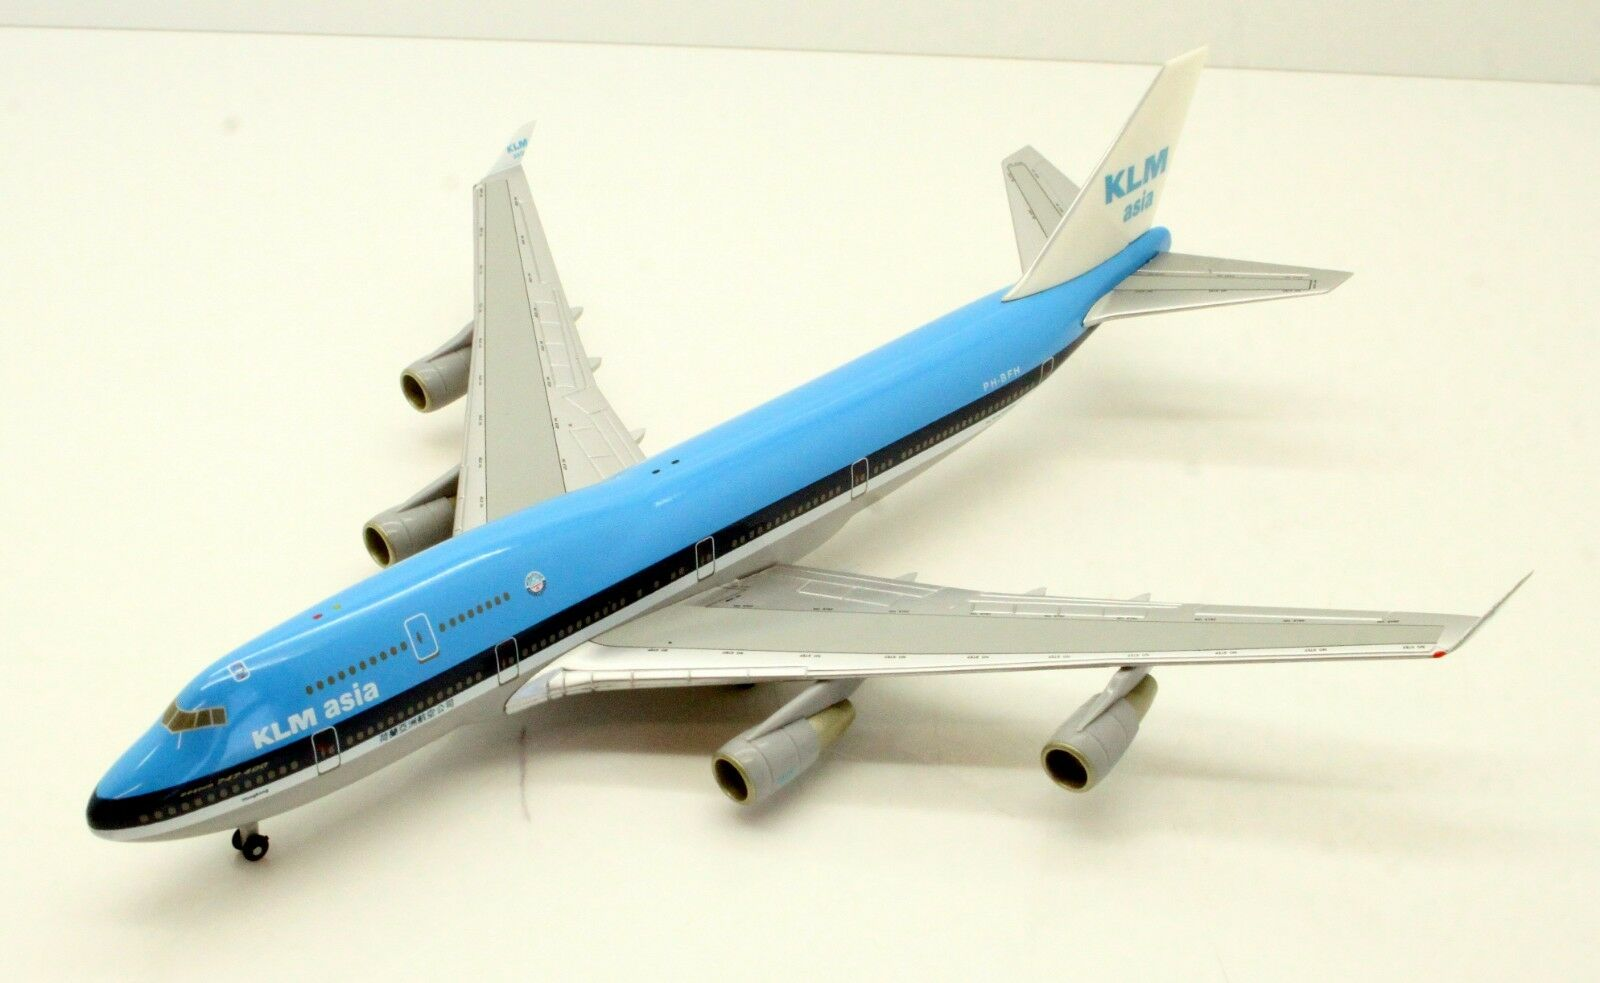 1 400 HERPA WINGS 560368 KLM BOEING 747-400 CITY OF HONGKONG 2W